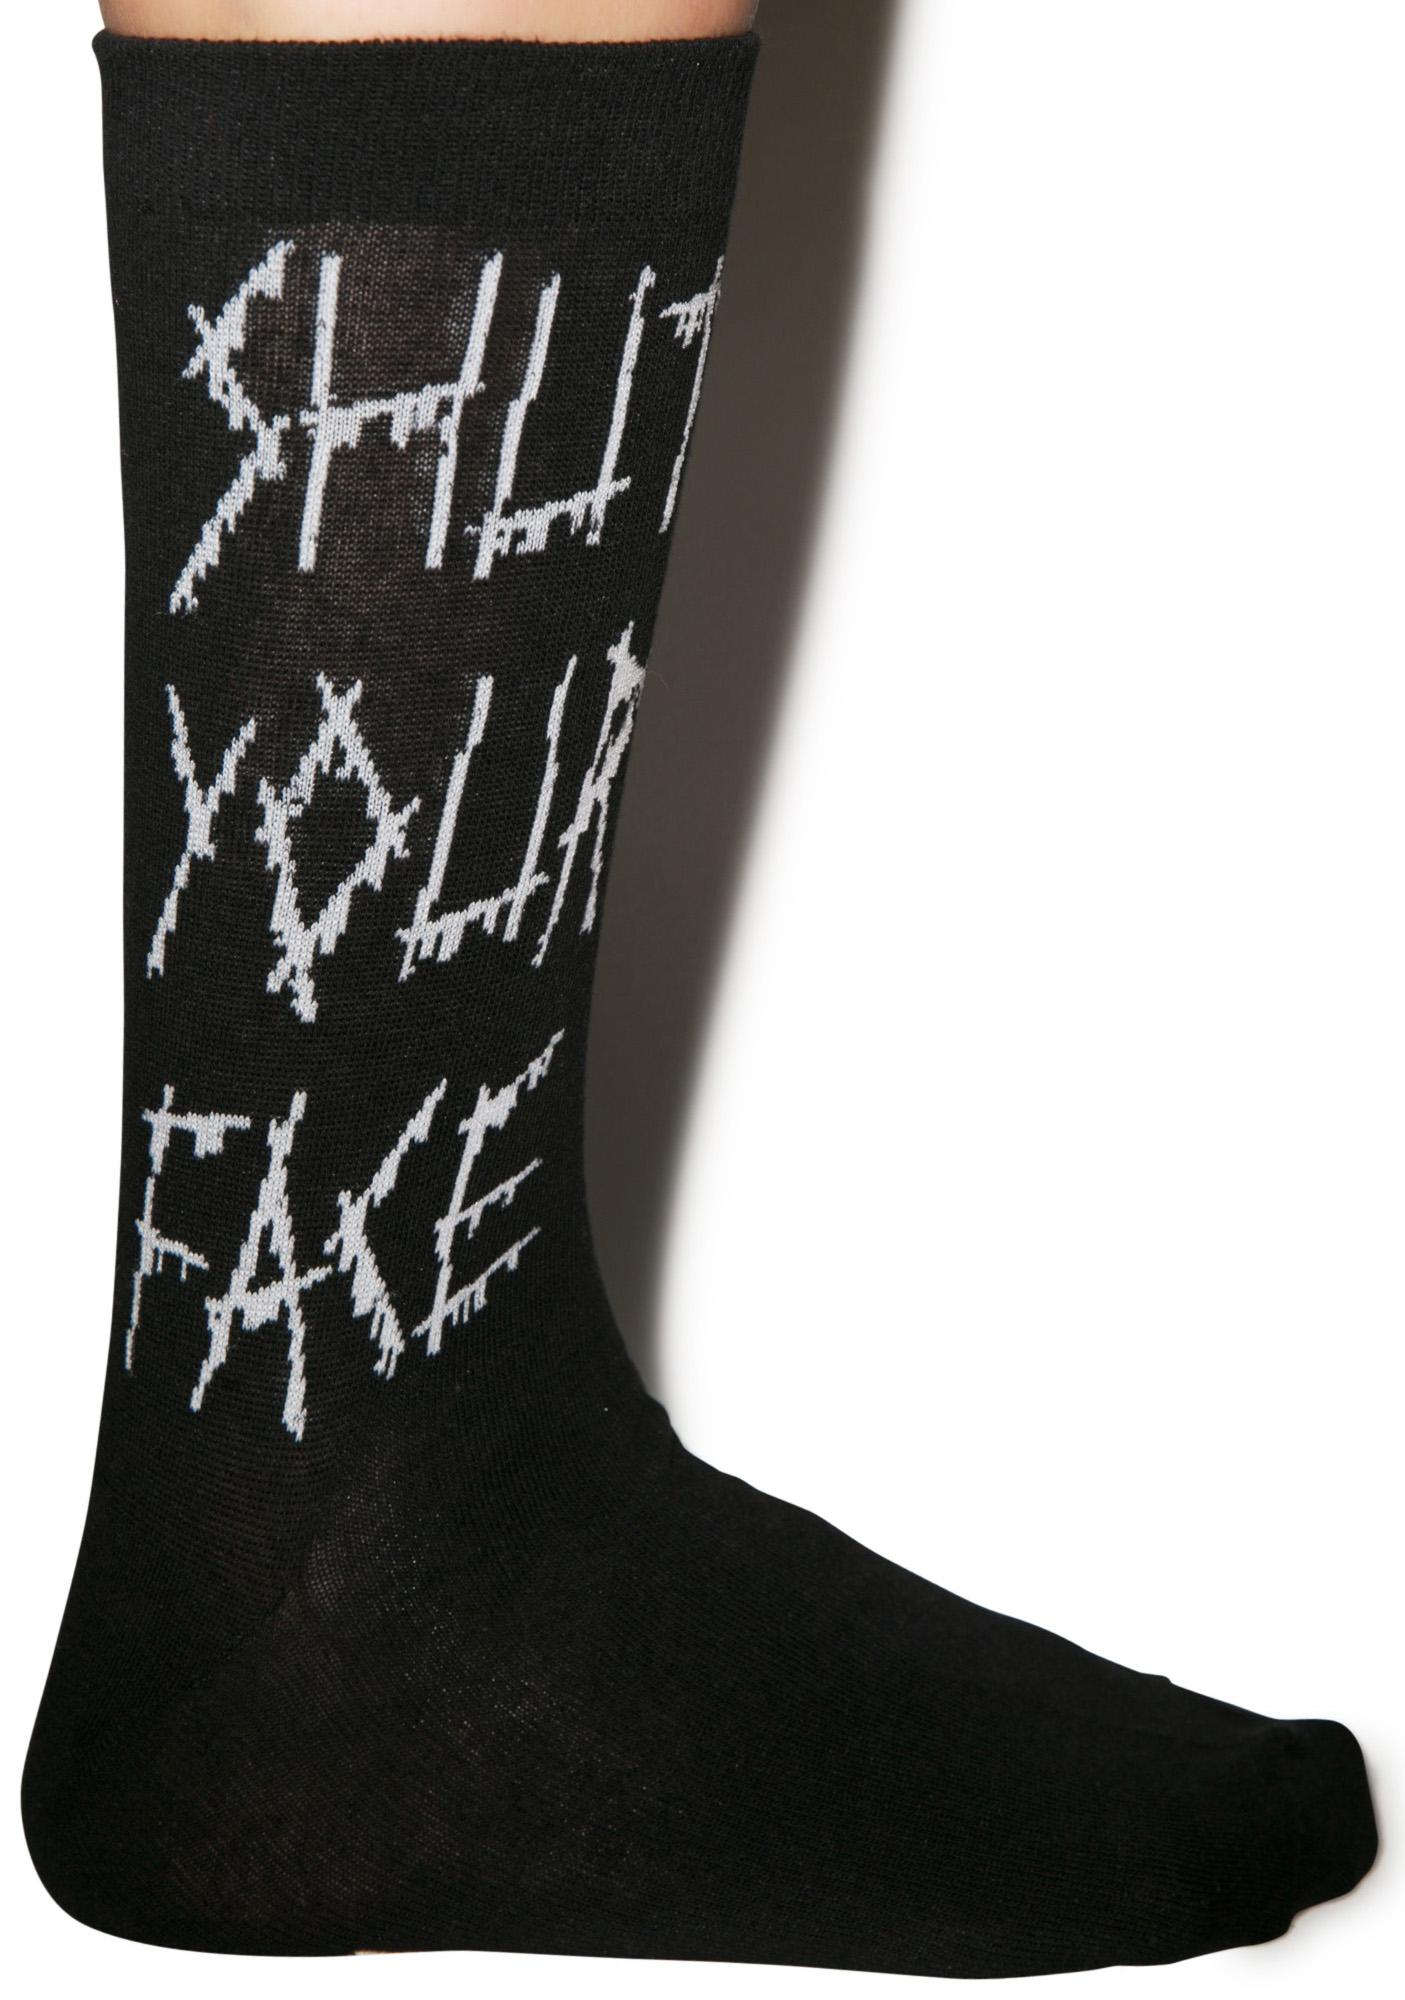 Shut Your Face Socks